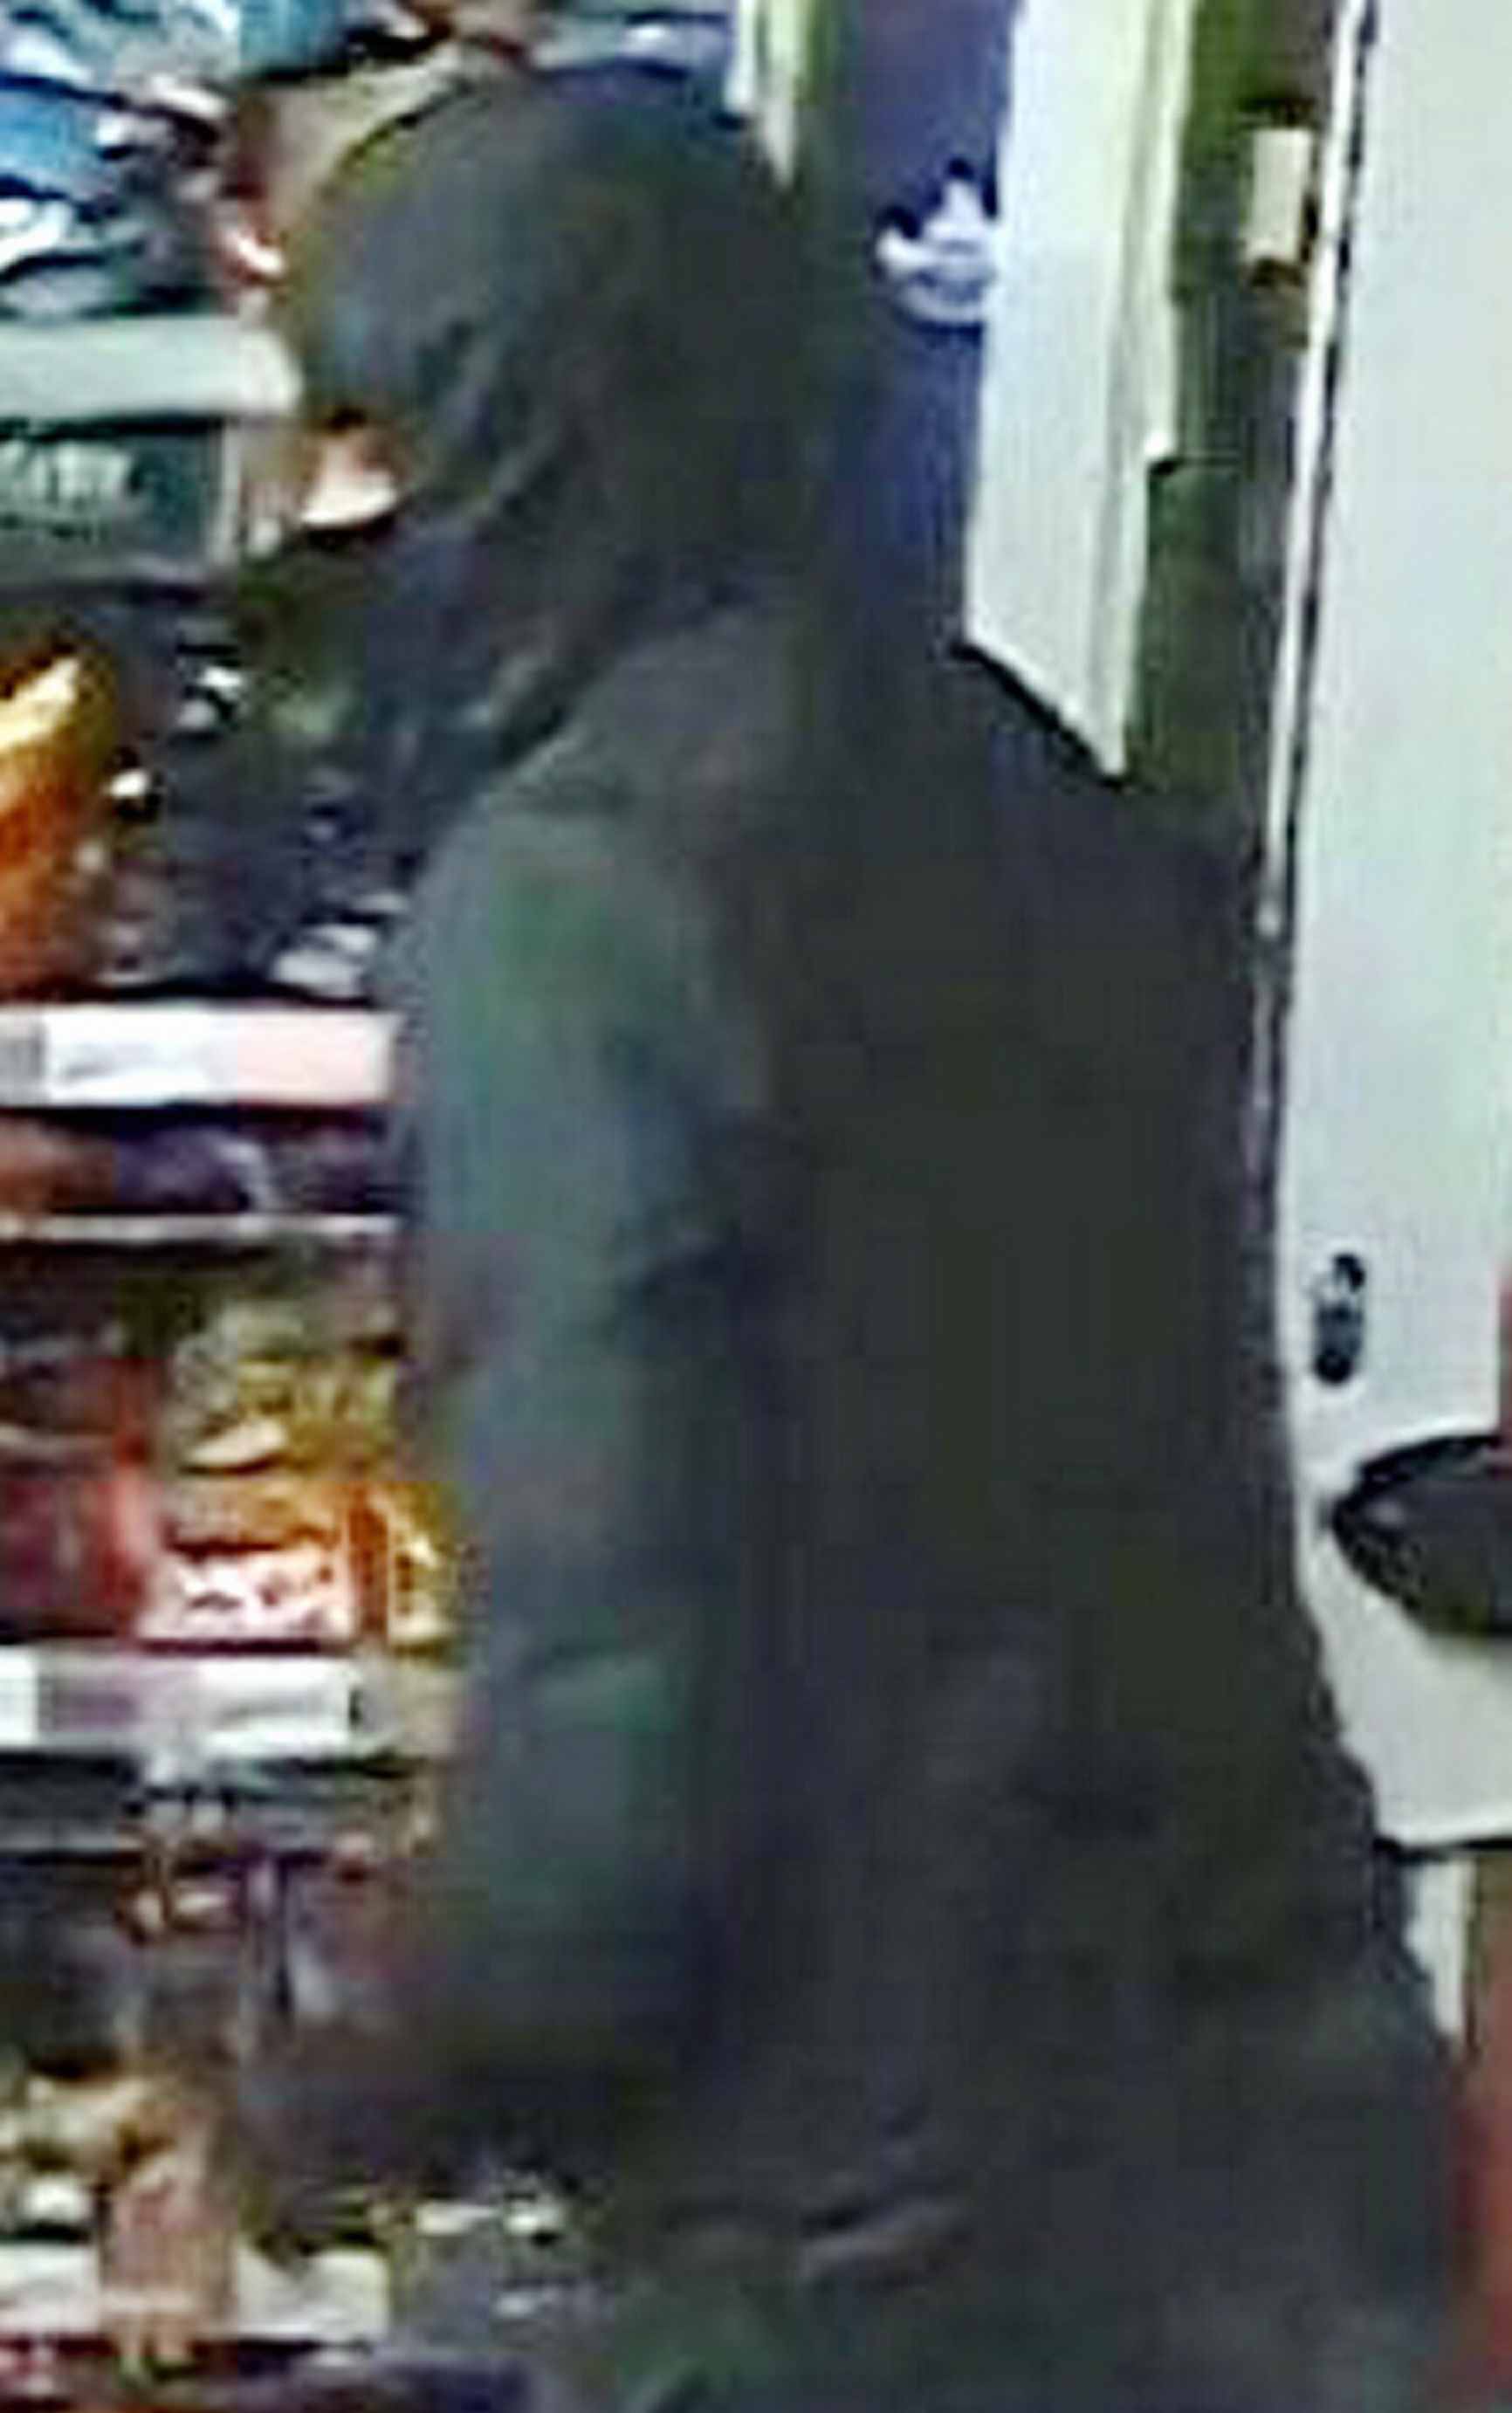 CCTV released of Wibsey shopkeeper attack robbery suspects